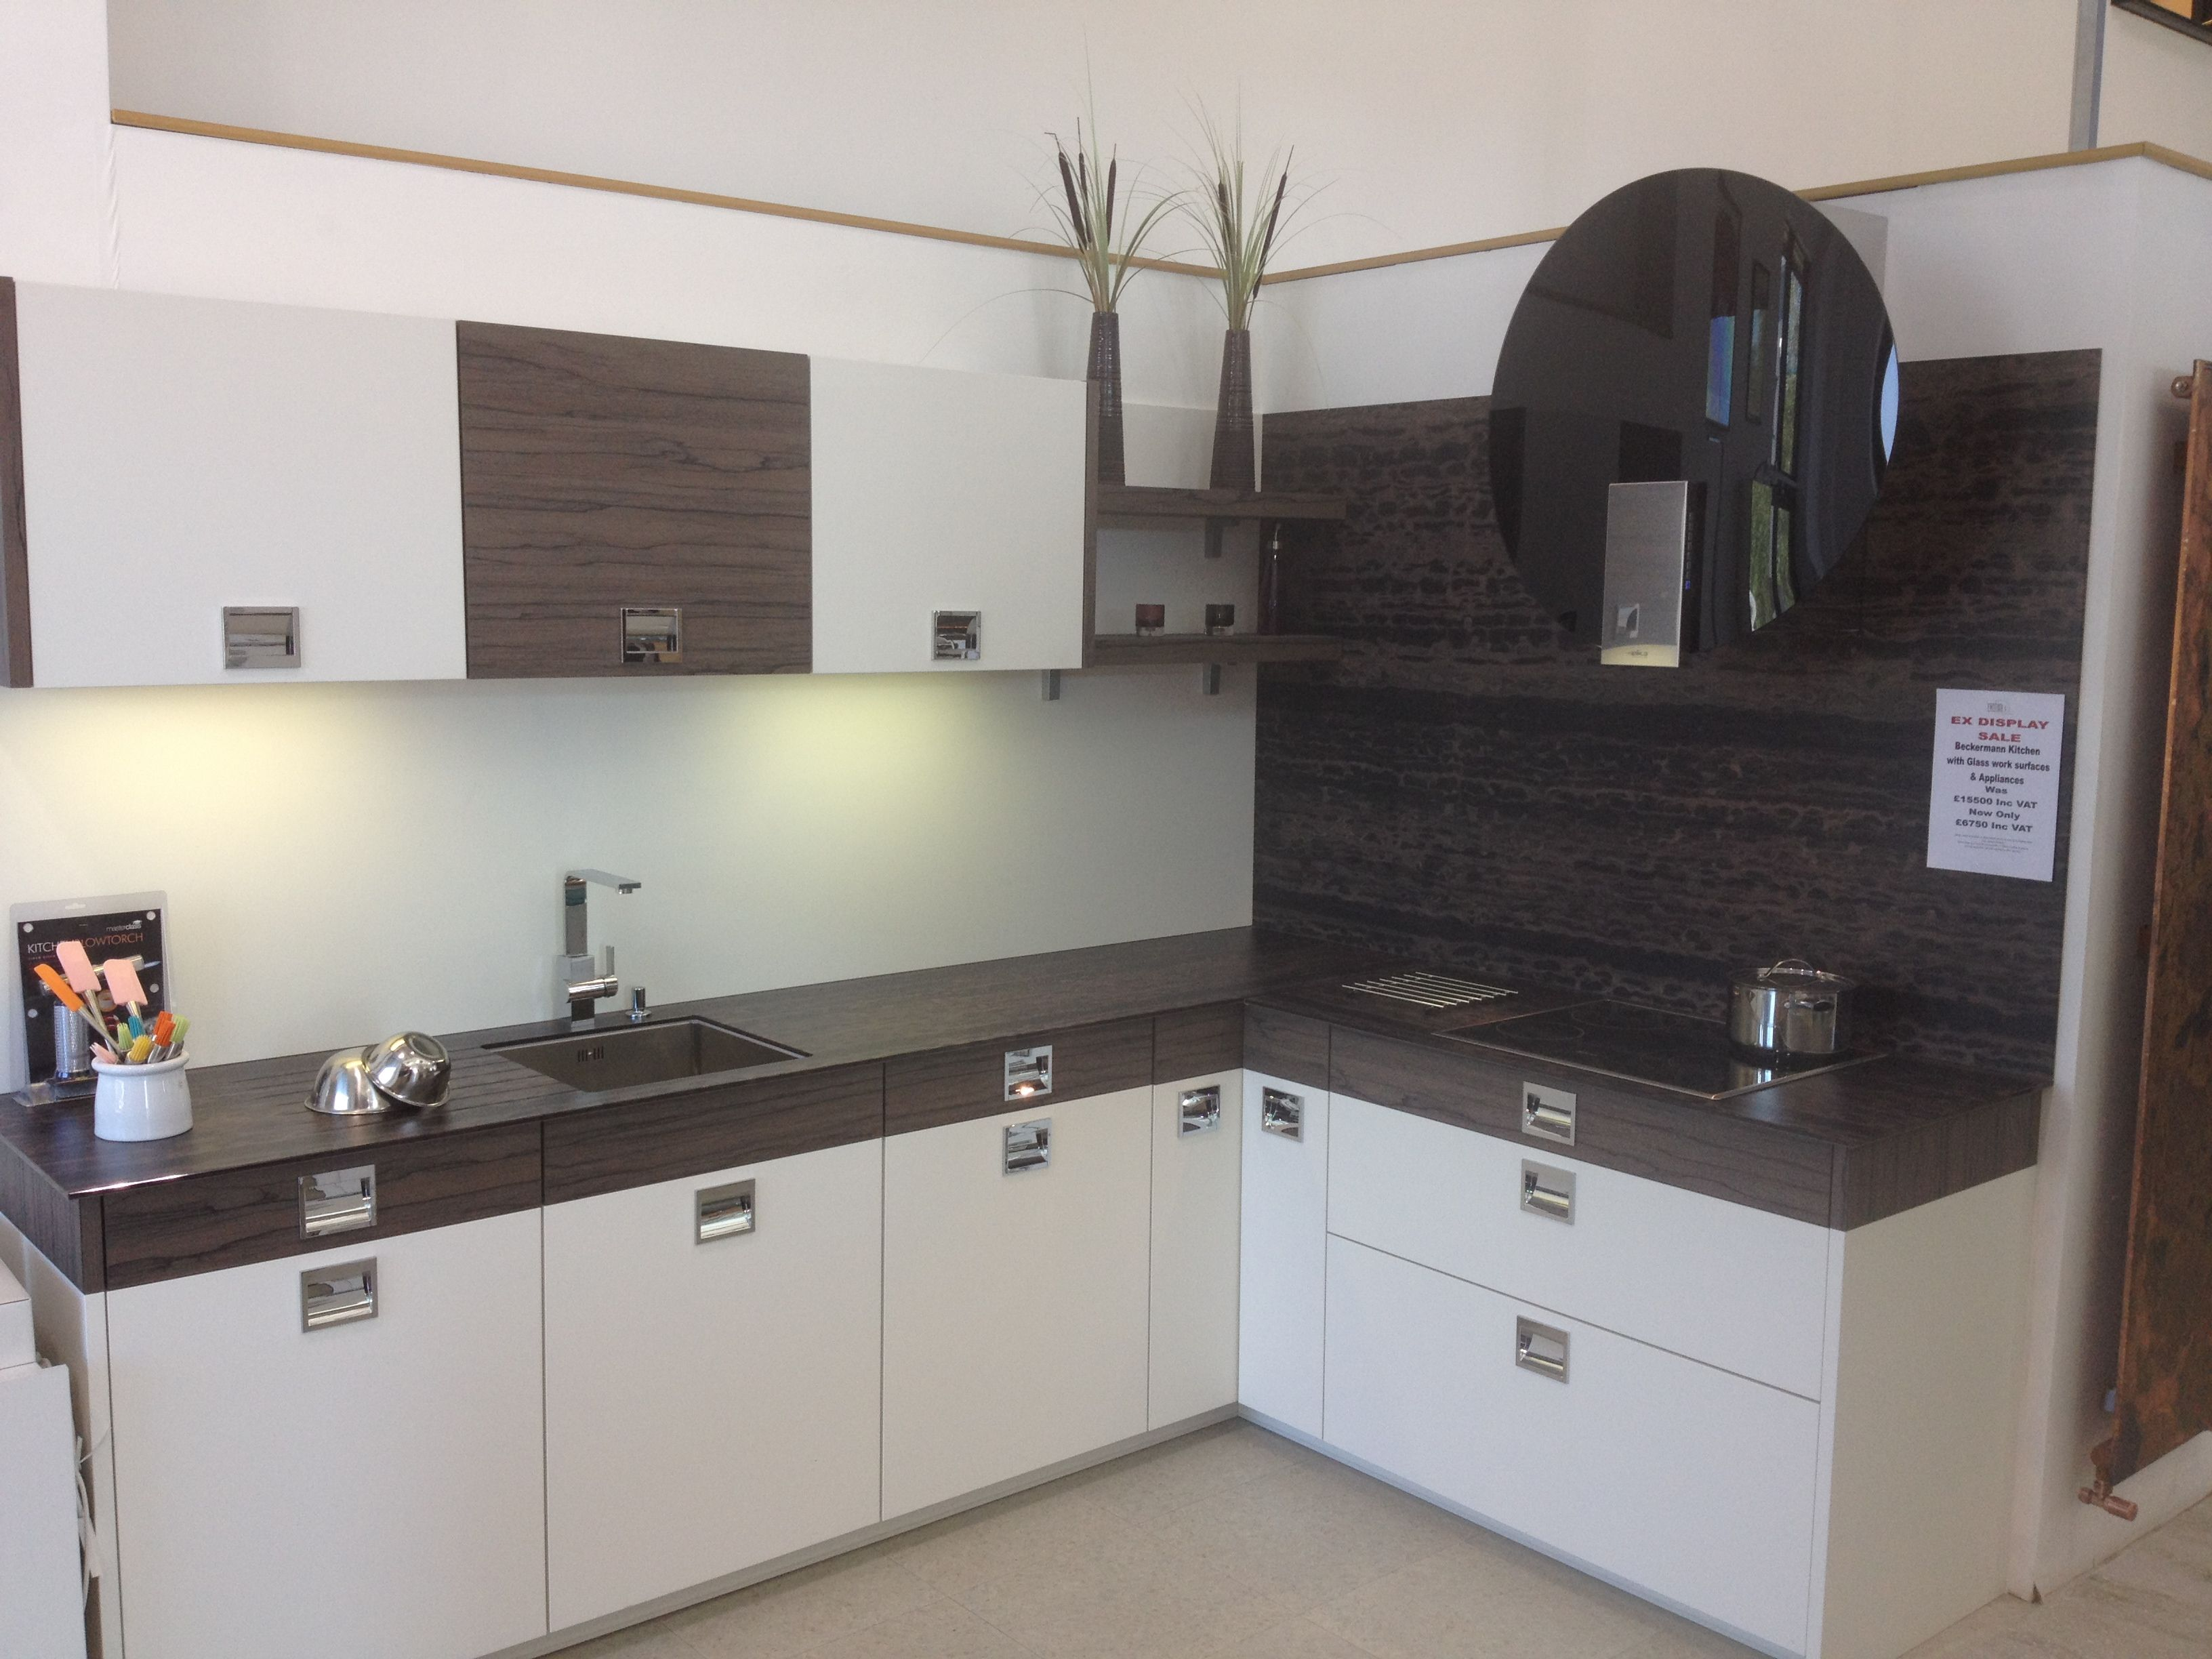 ex display beckermann kitchen with glass work surfaces and splash back neff hob elica space. Black Bedroom Furniture Sets. Home Design Ideas